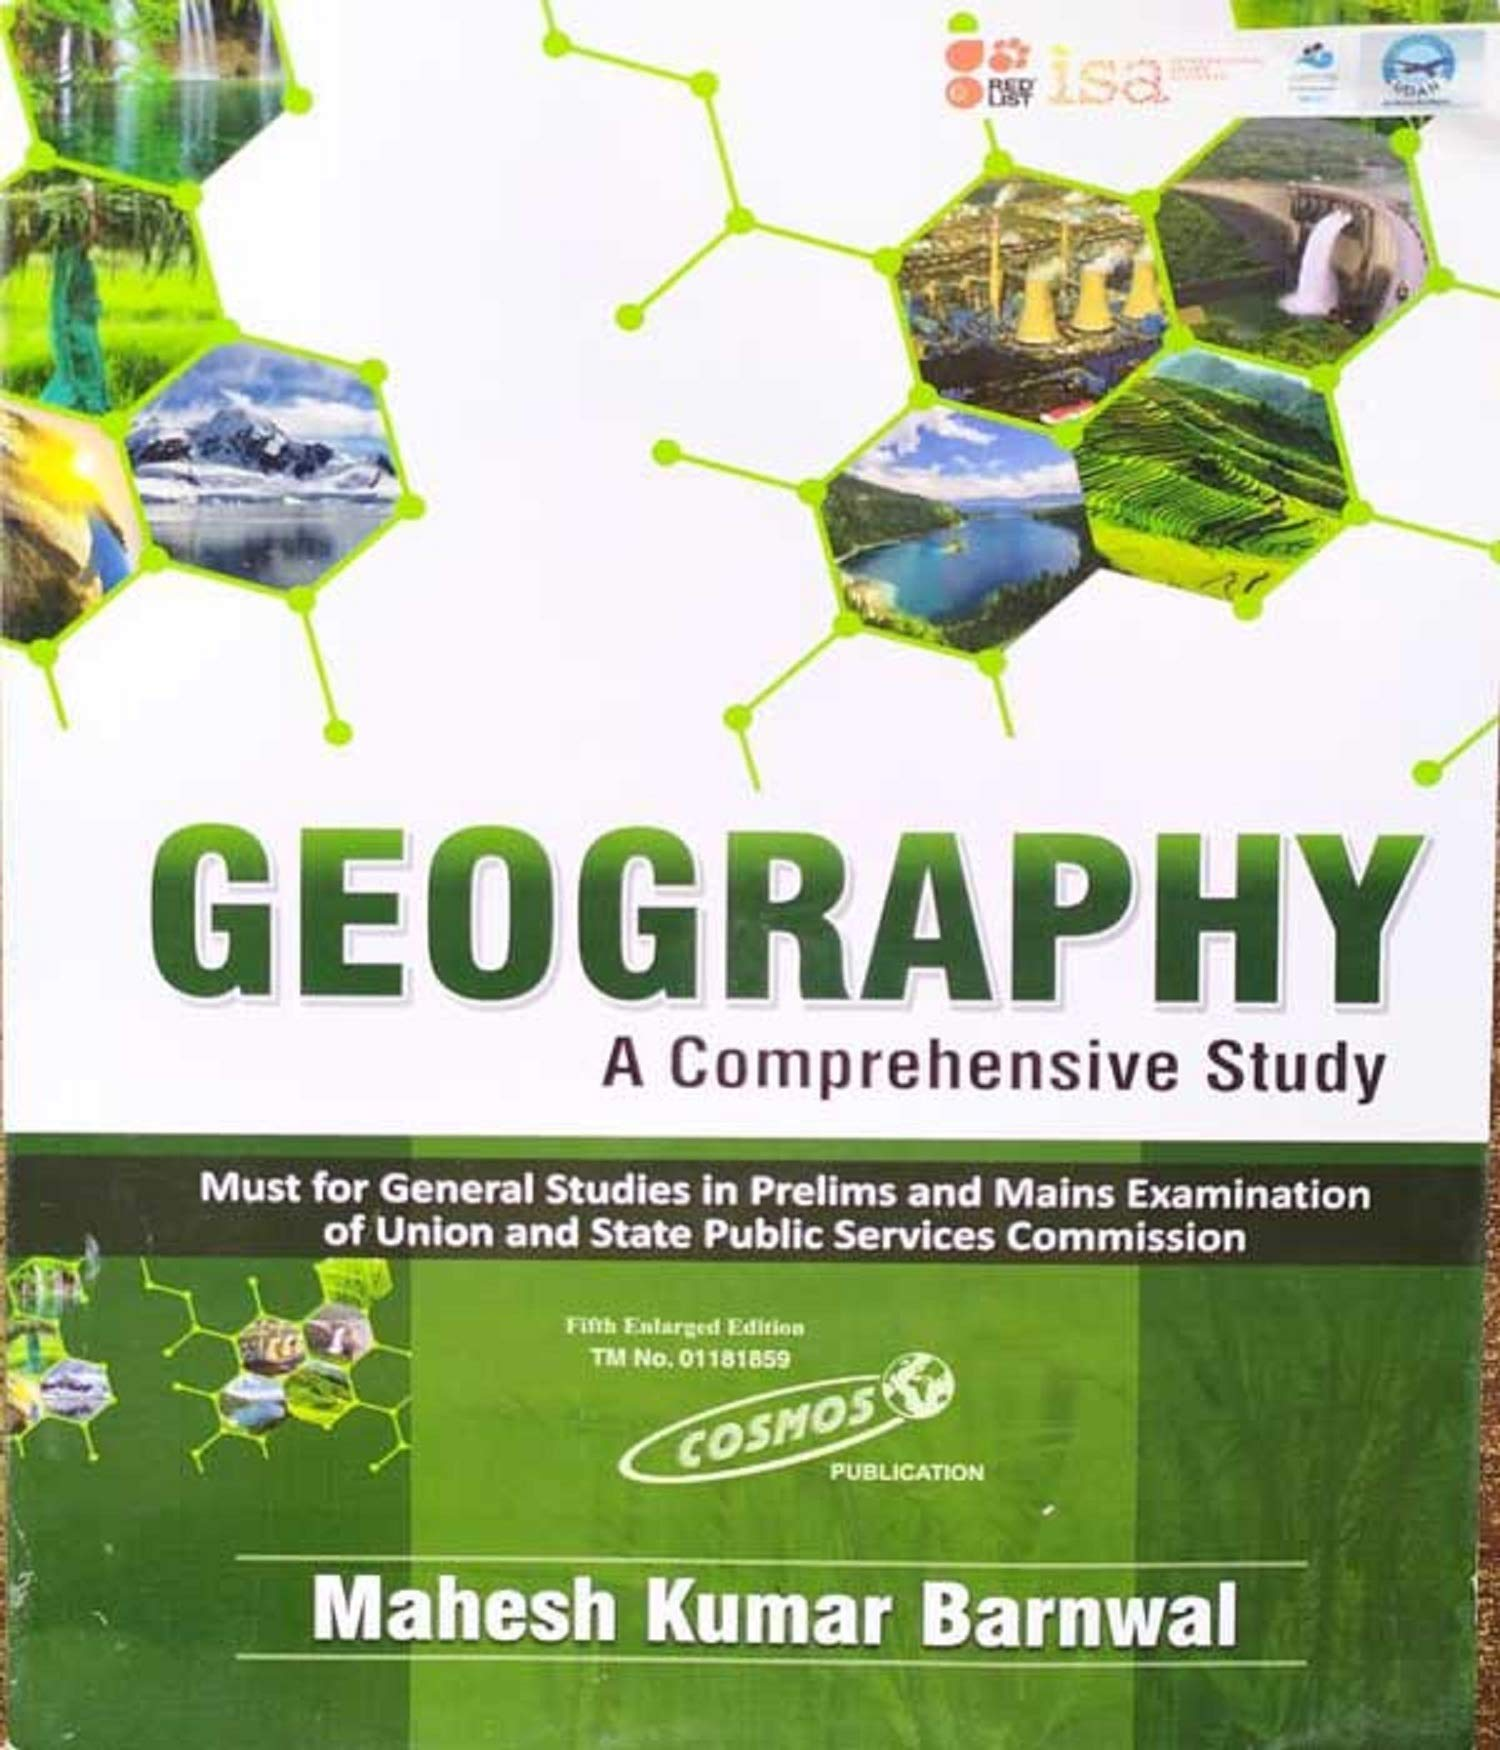 UPPSC PCS Books for Indian and World Geography